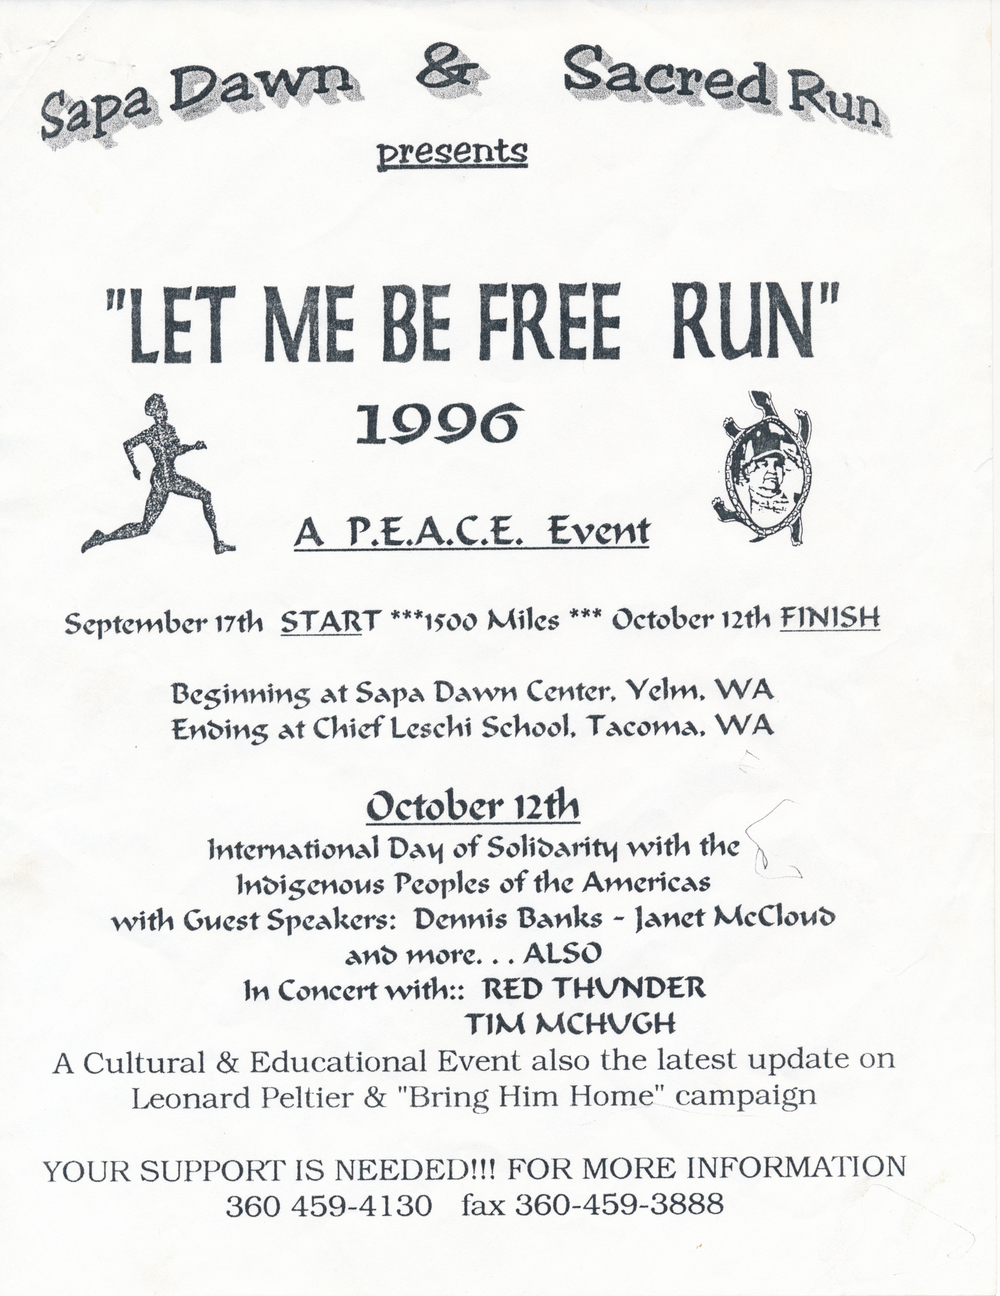 Original flyer for the Run